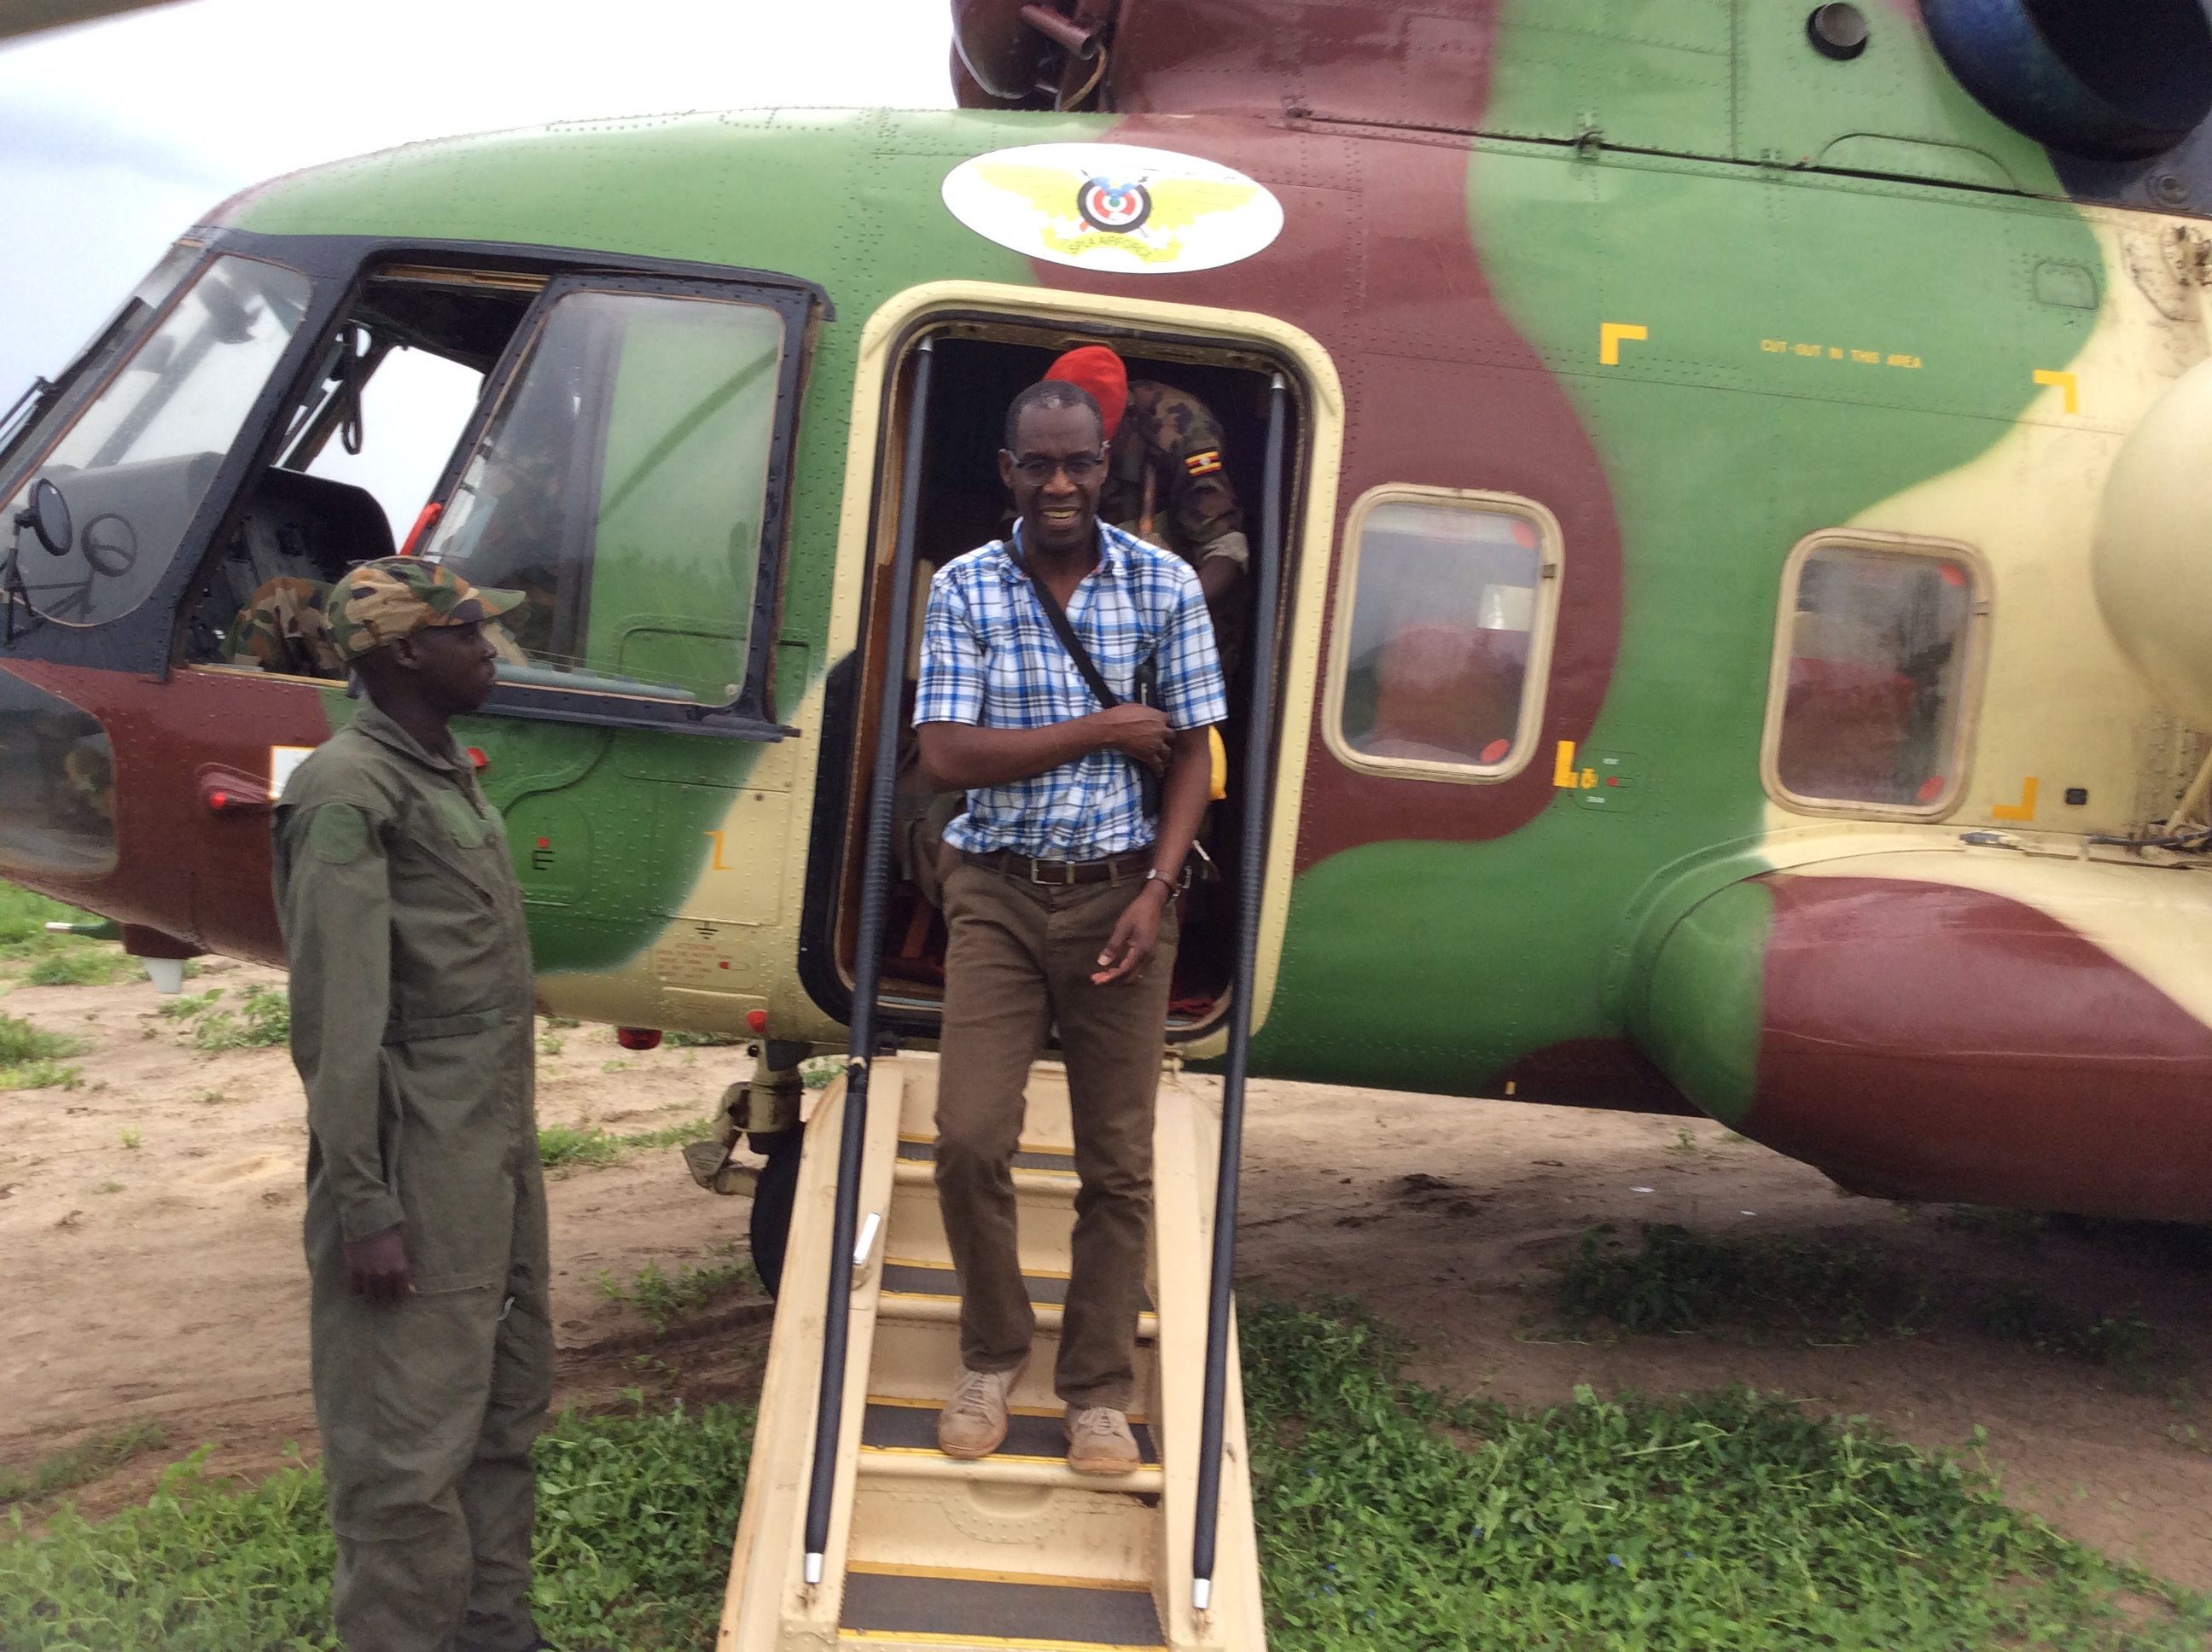 Opiyo arriving in Bor Toen, South Sudan aboard a South Suda Army helicopter on Wednesday July 16, 2015.